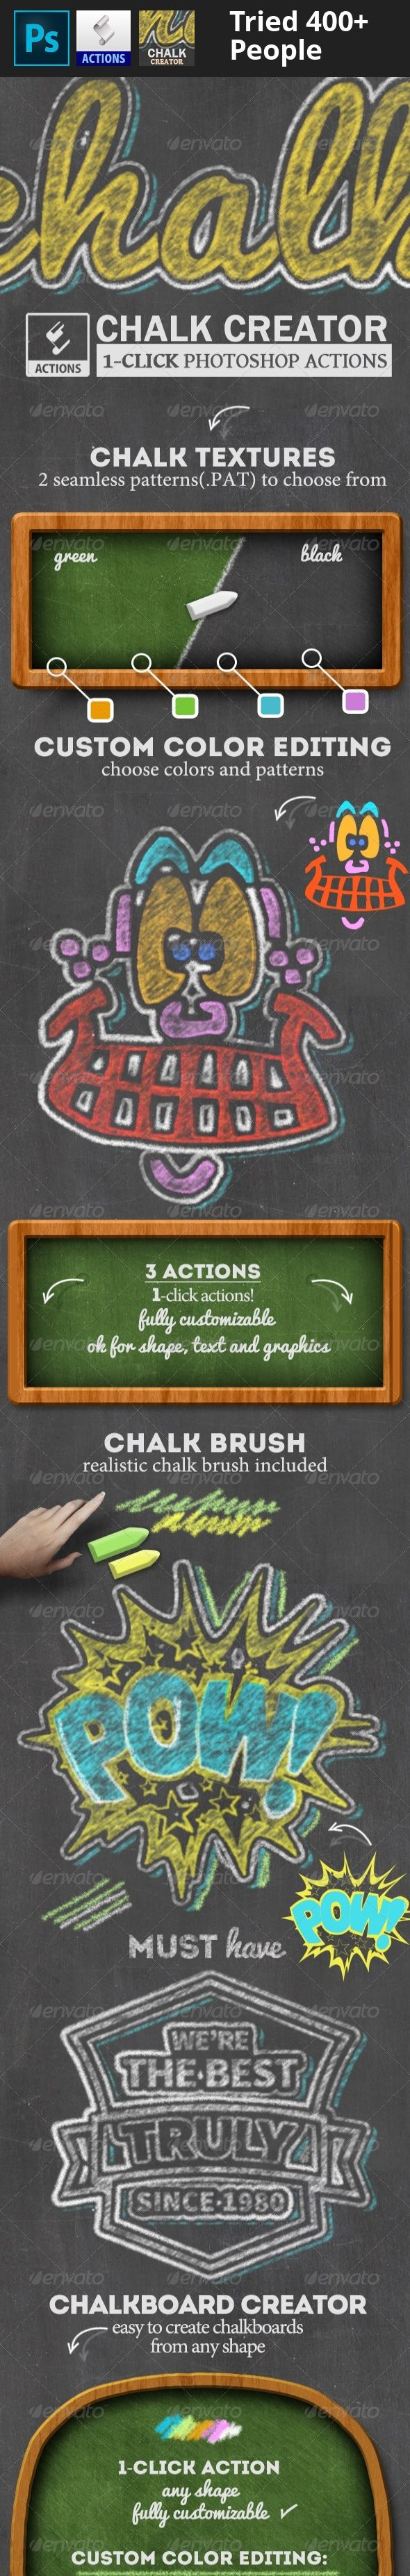 asphalt texture, blackboard, blackboard texture, chalk asphalt drawing, chalk design, chalk flyer, chalk photoshop, chalk poster, Chalk Style, chalk style photoshop, chalk text photoshop, chalk text style, chalk typography, chalkboard, chalkboard pattern, chalkboard texture, green chalkboard texture, vector chalk pieces    	   	Chalk Creator by psddude – This set contains 3 Photoshop actions that will allow you to create realistic chalk effects out of any text, shape or raster. The pack a...